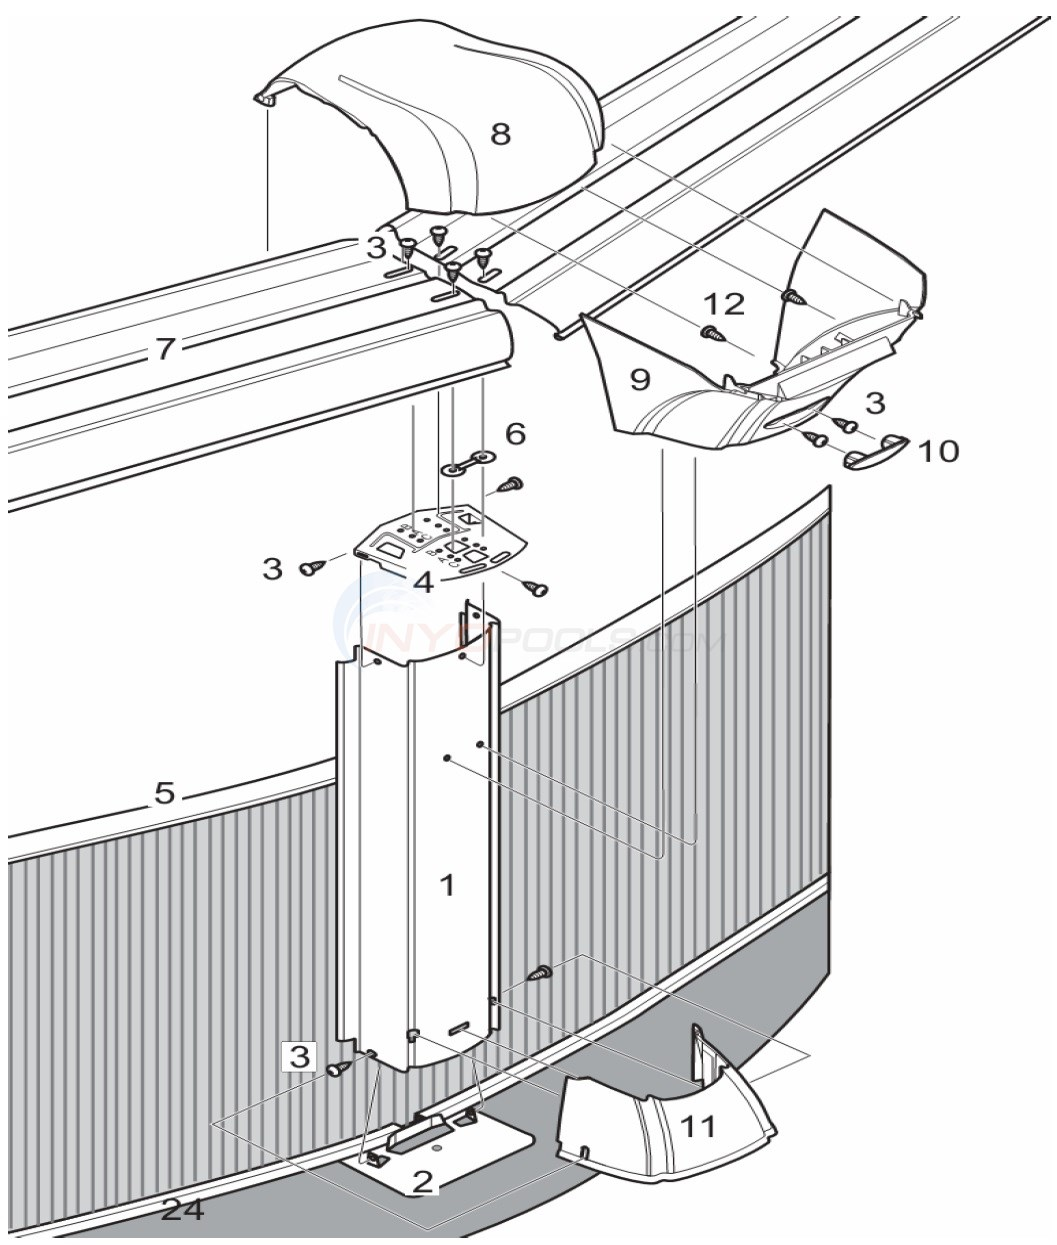 "Belize 30' Round 52"" Wall (Steel Top Rail, Steel Upright) Diagram"